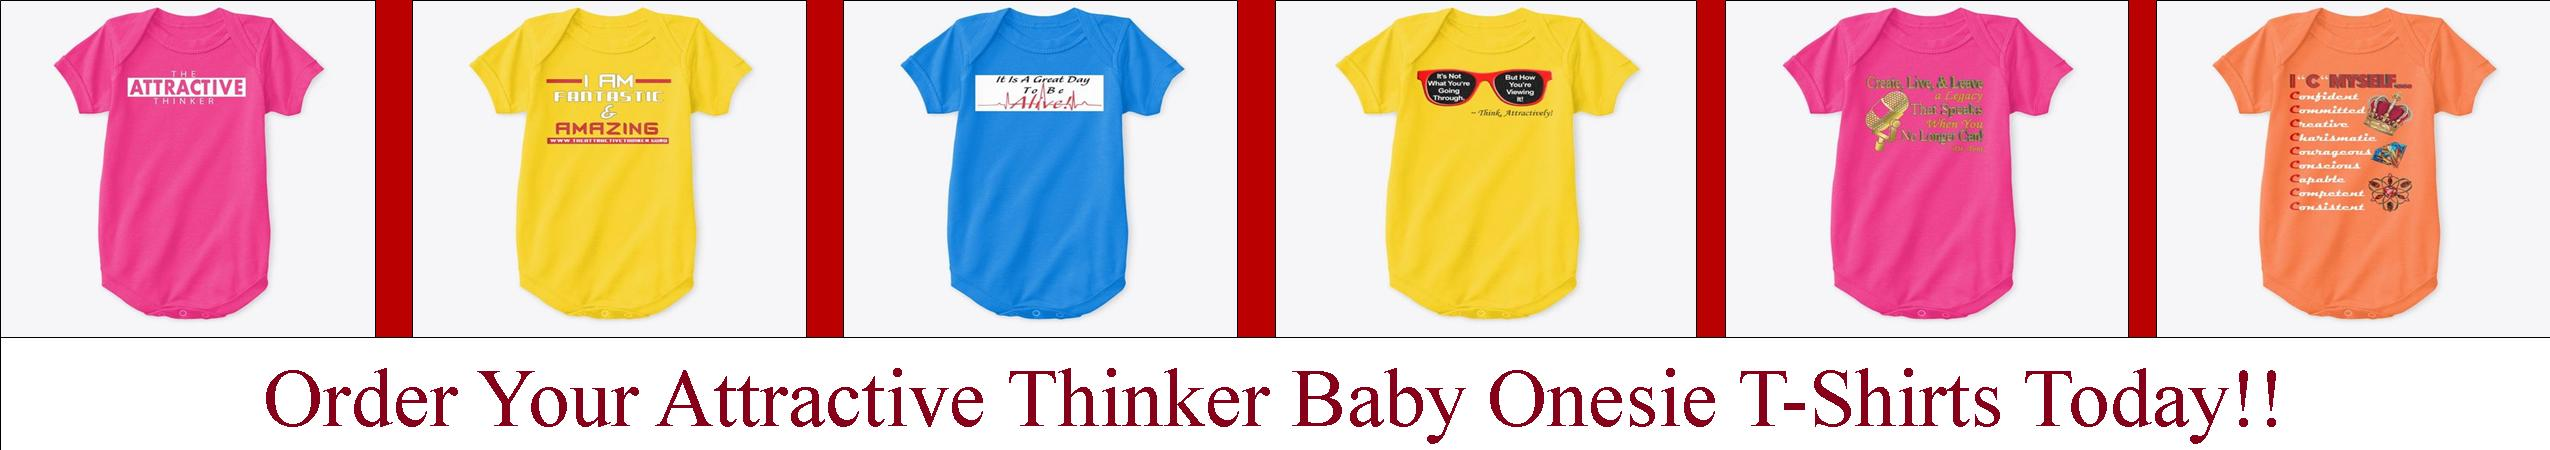 The Attractive Thinker Babies T Shirts